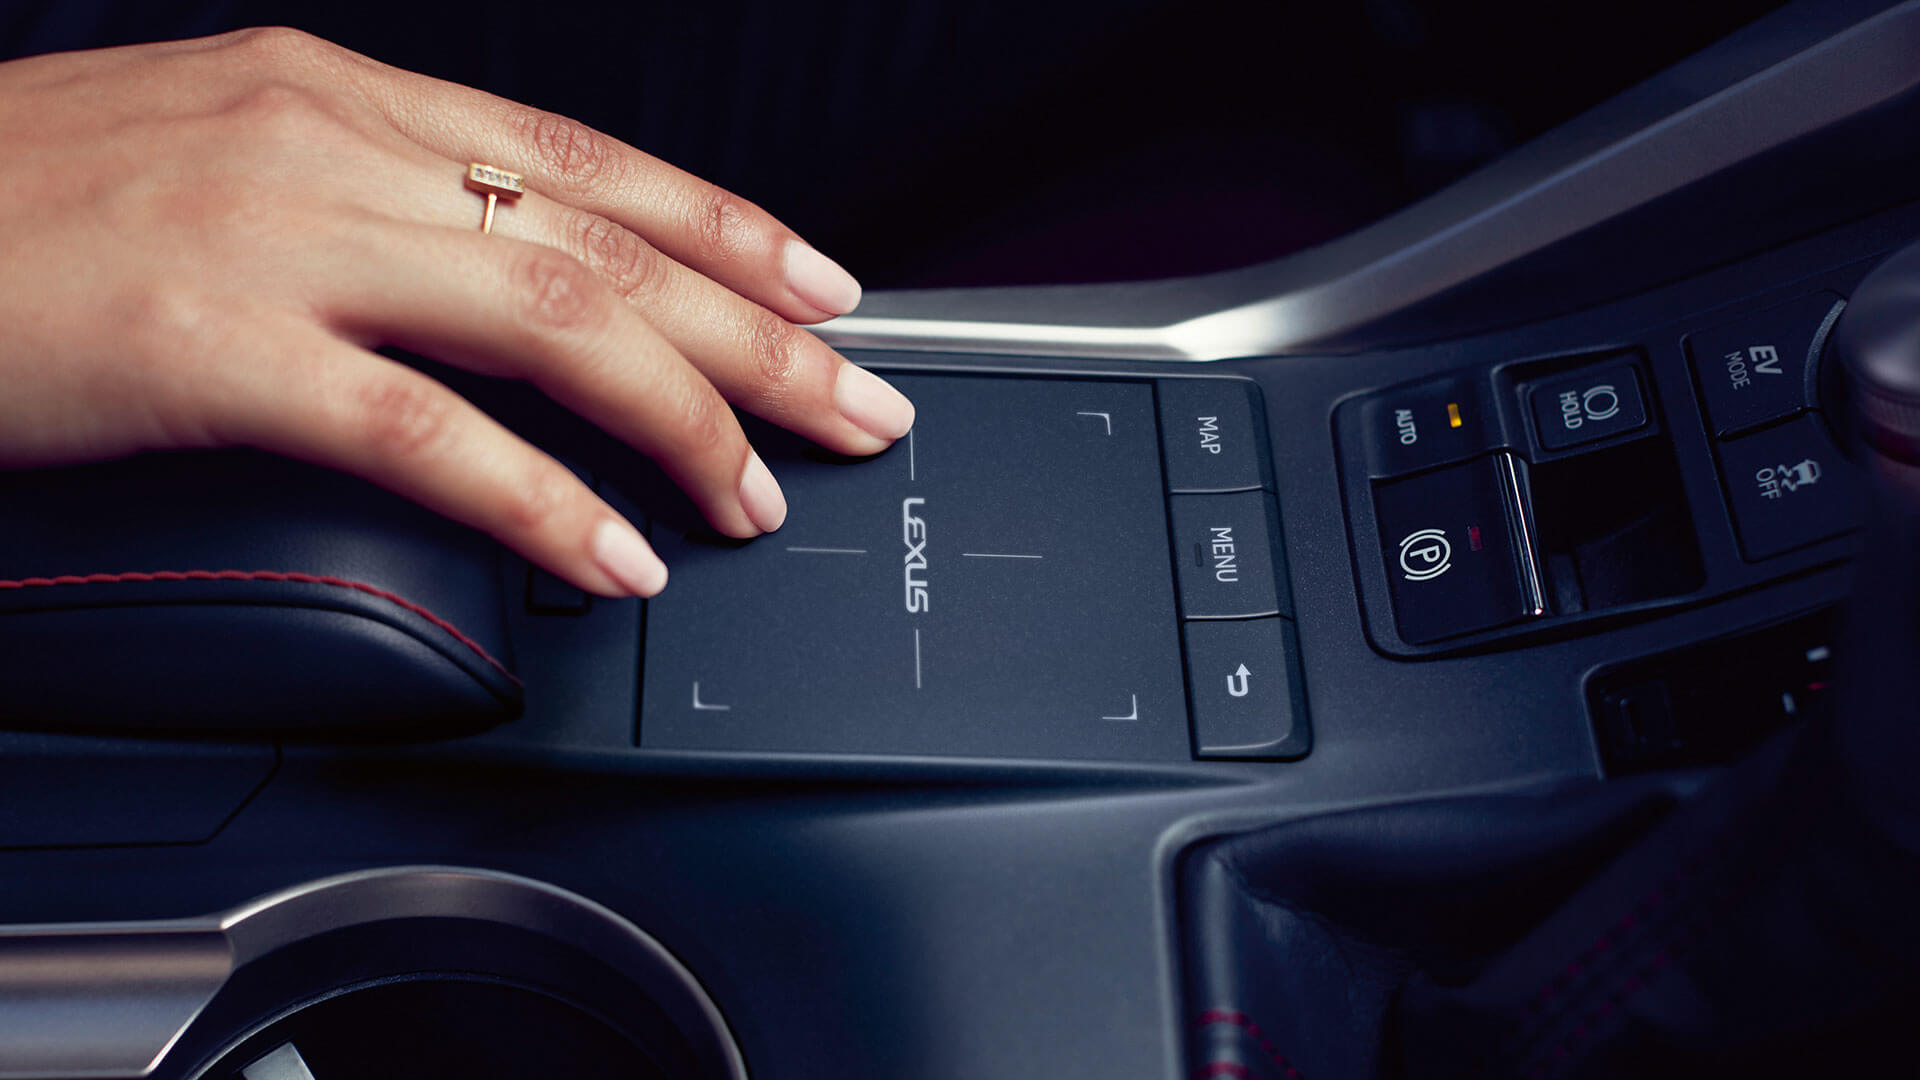 2018 lexus nx my18 features touch pad control